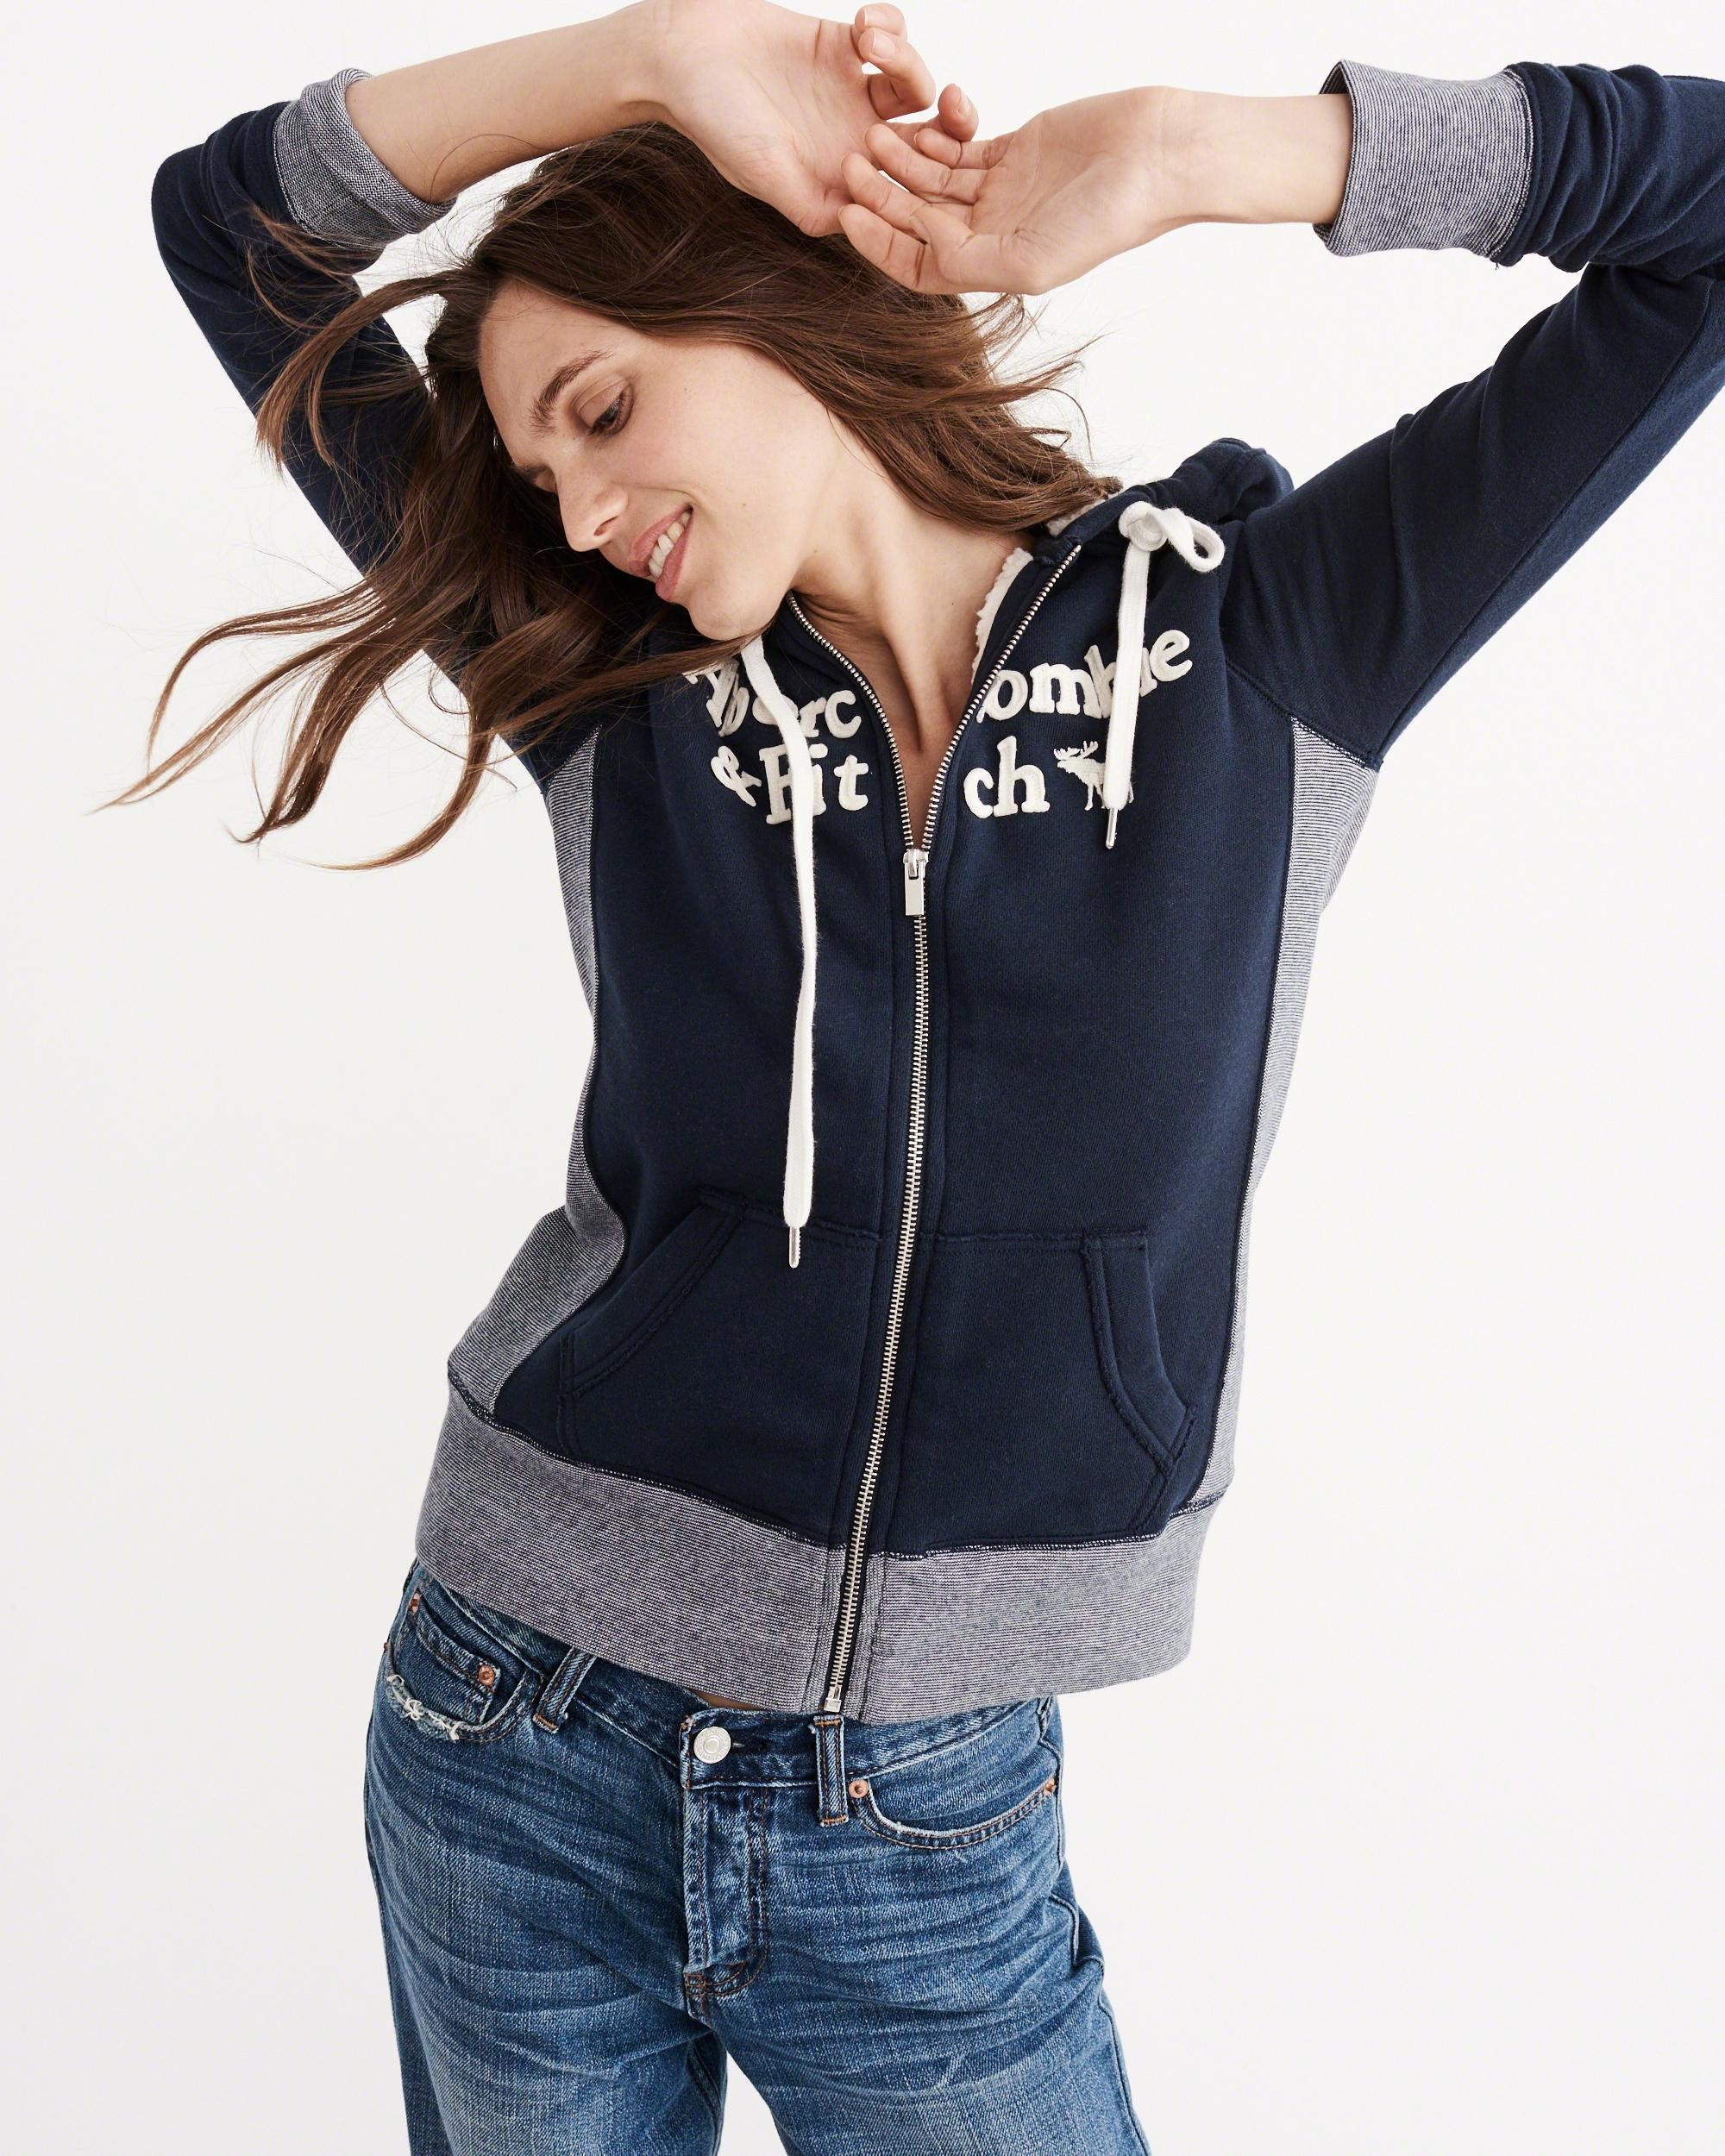 Abercrombie Fitch Accessories Abercrombie Fitch Womens: Abercrombie & Fitch Sherpa Full-zip Hoodie In Blue